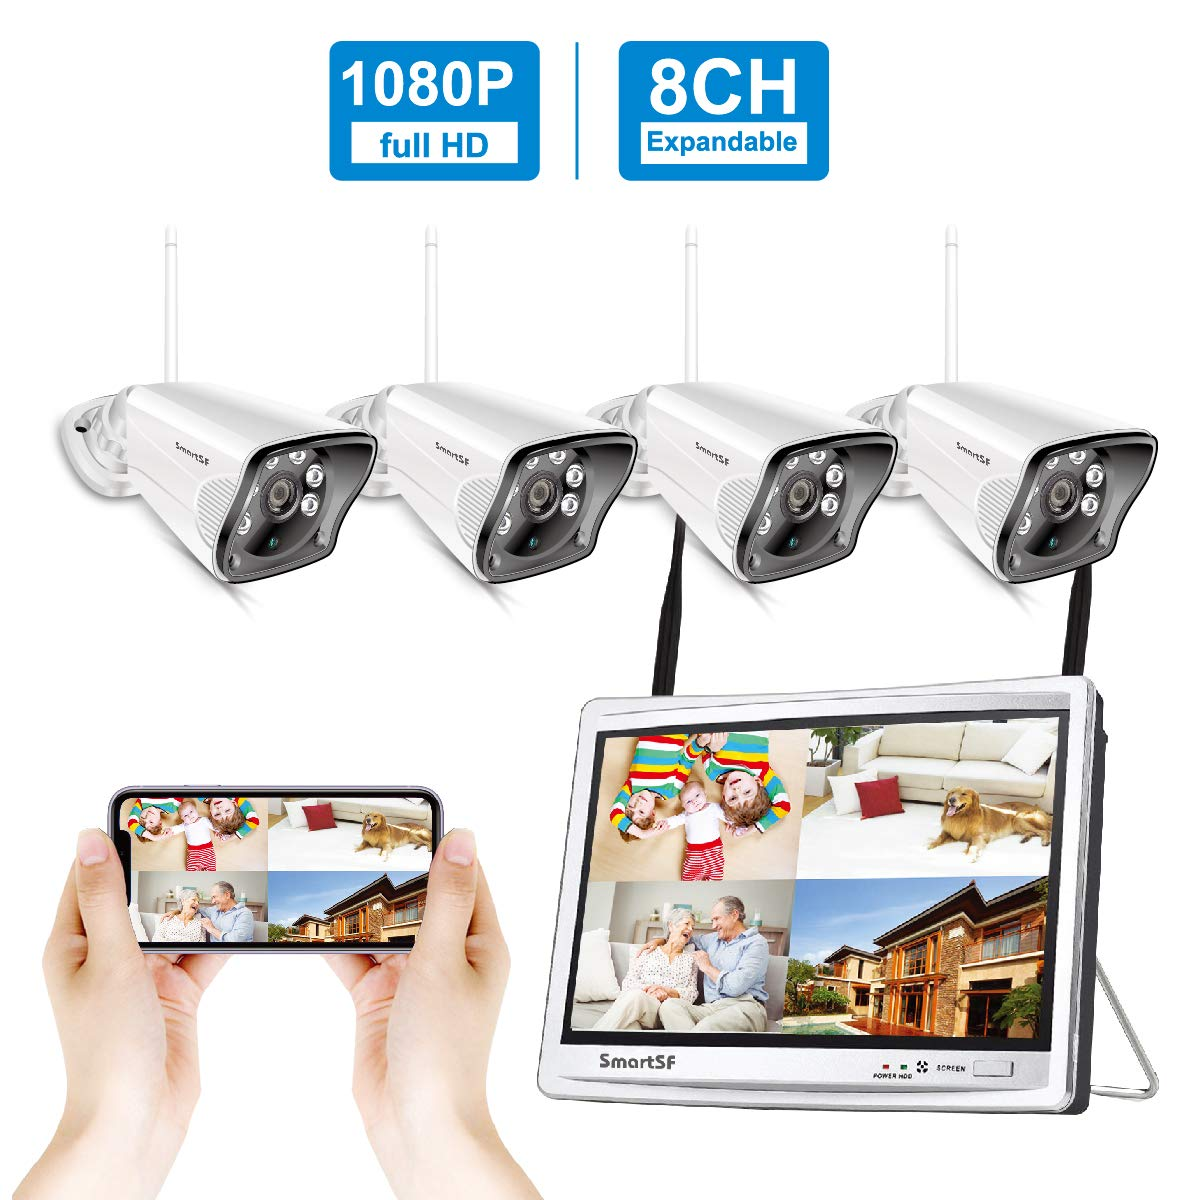 SmartSF 8CH 1080P NVR with 12- inch Monitor Wireless Surveillance Security Camera System CCTV Kit,4Pcs 1080P 2MP Weatherproof IP Camera,65ft Night Vision and Free APP Access,Motion Alert